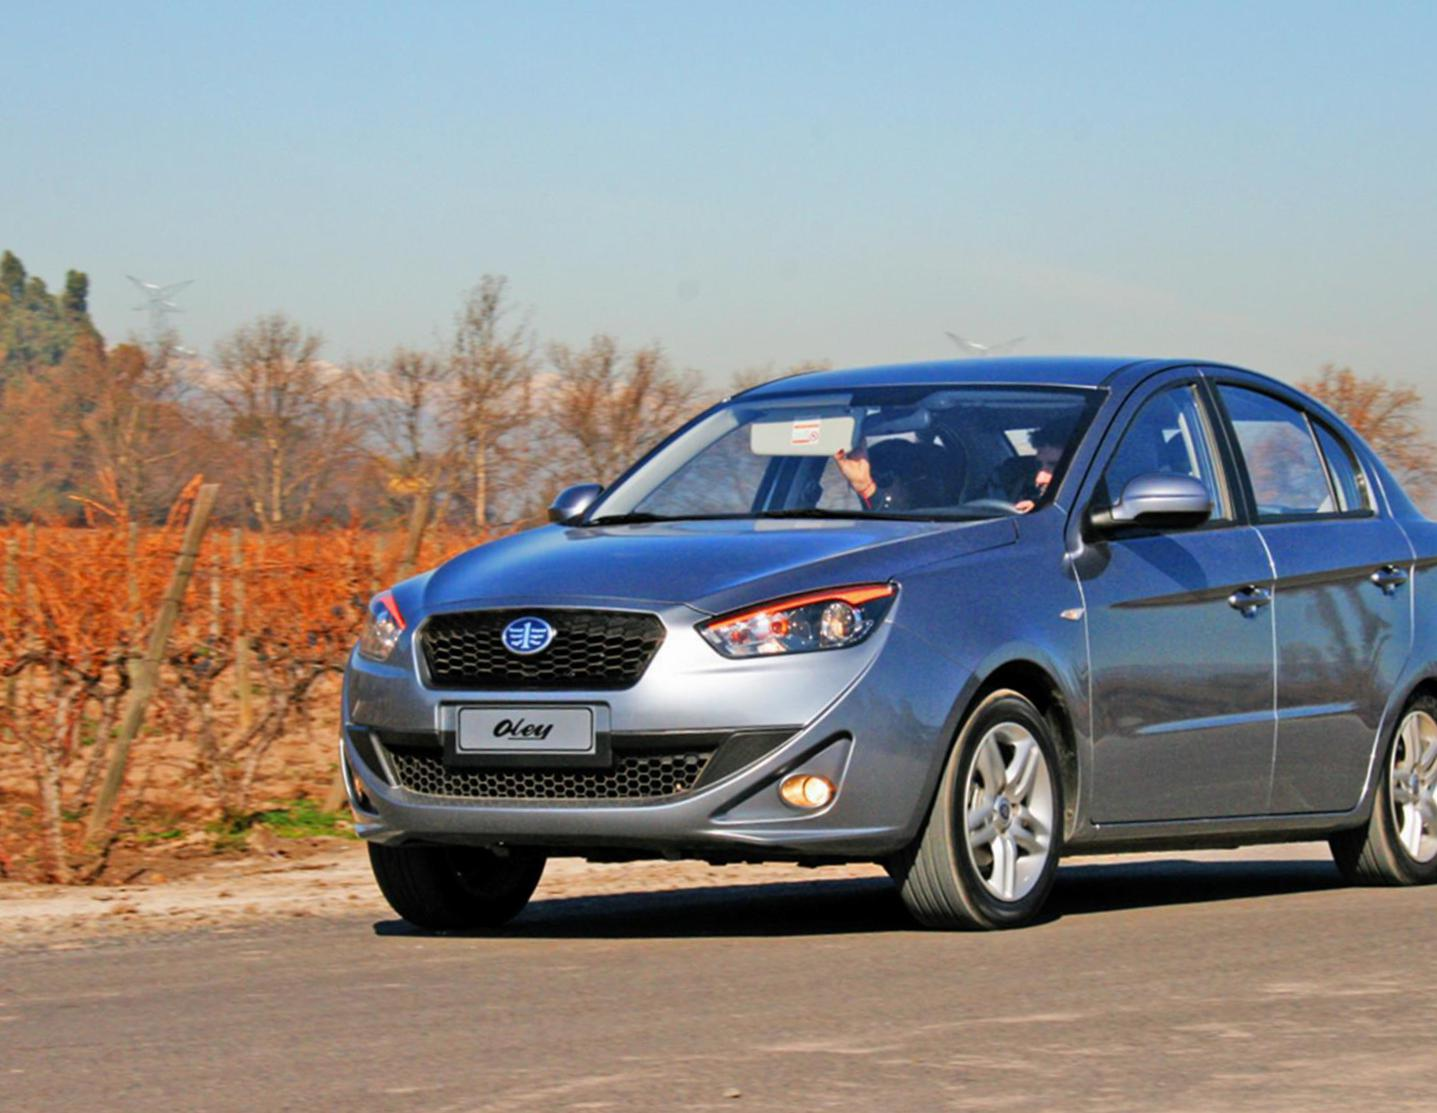 Oley Hatchback FAW review 2014